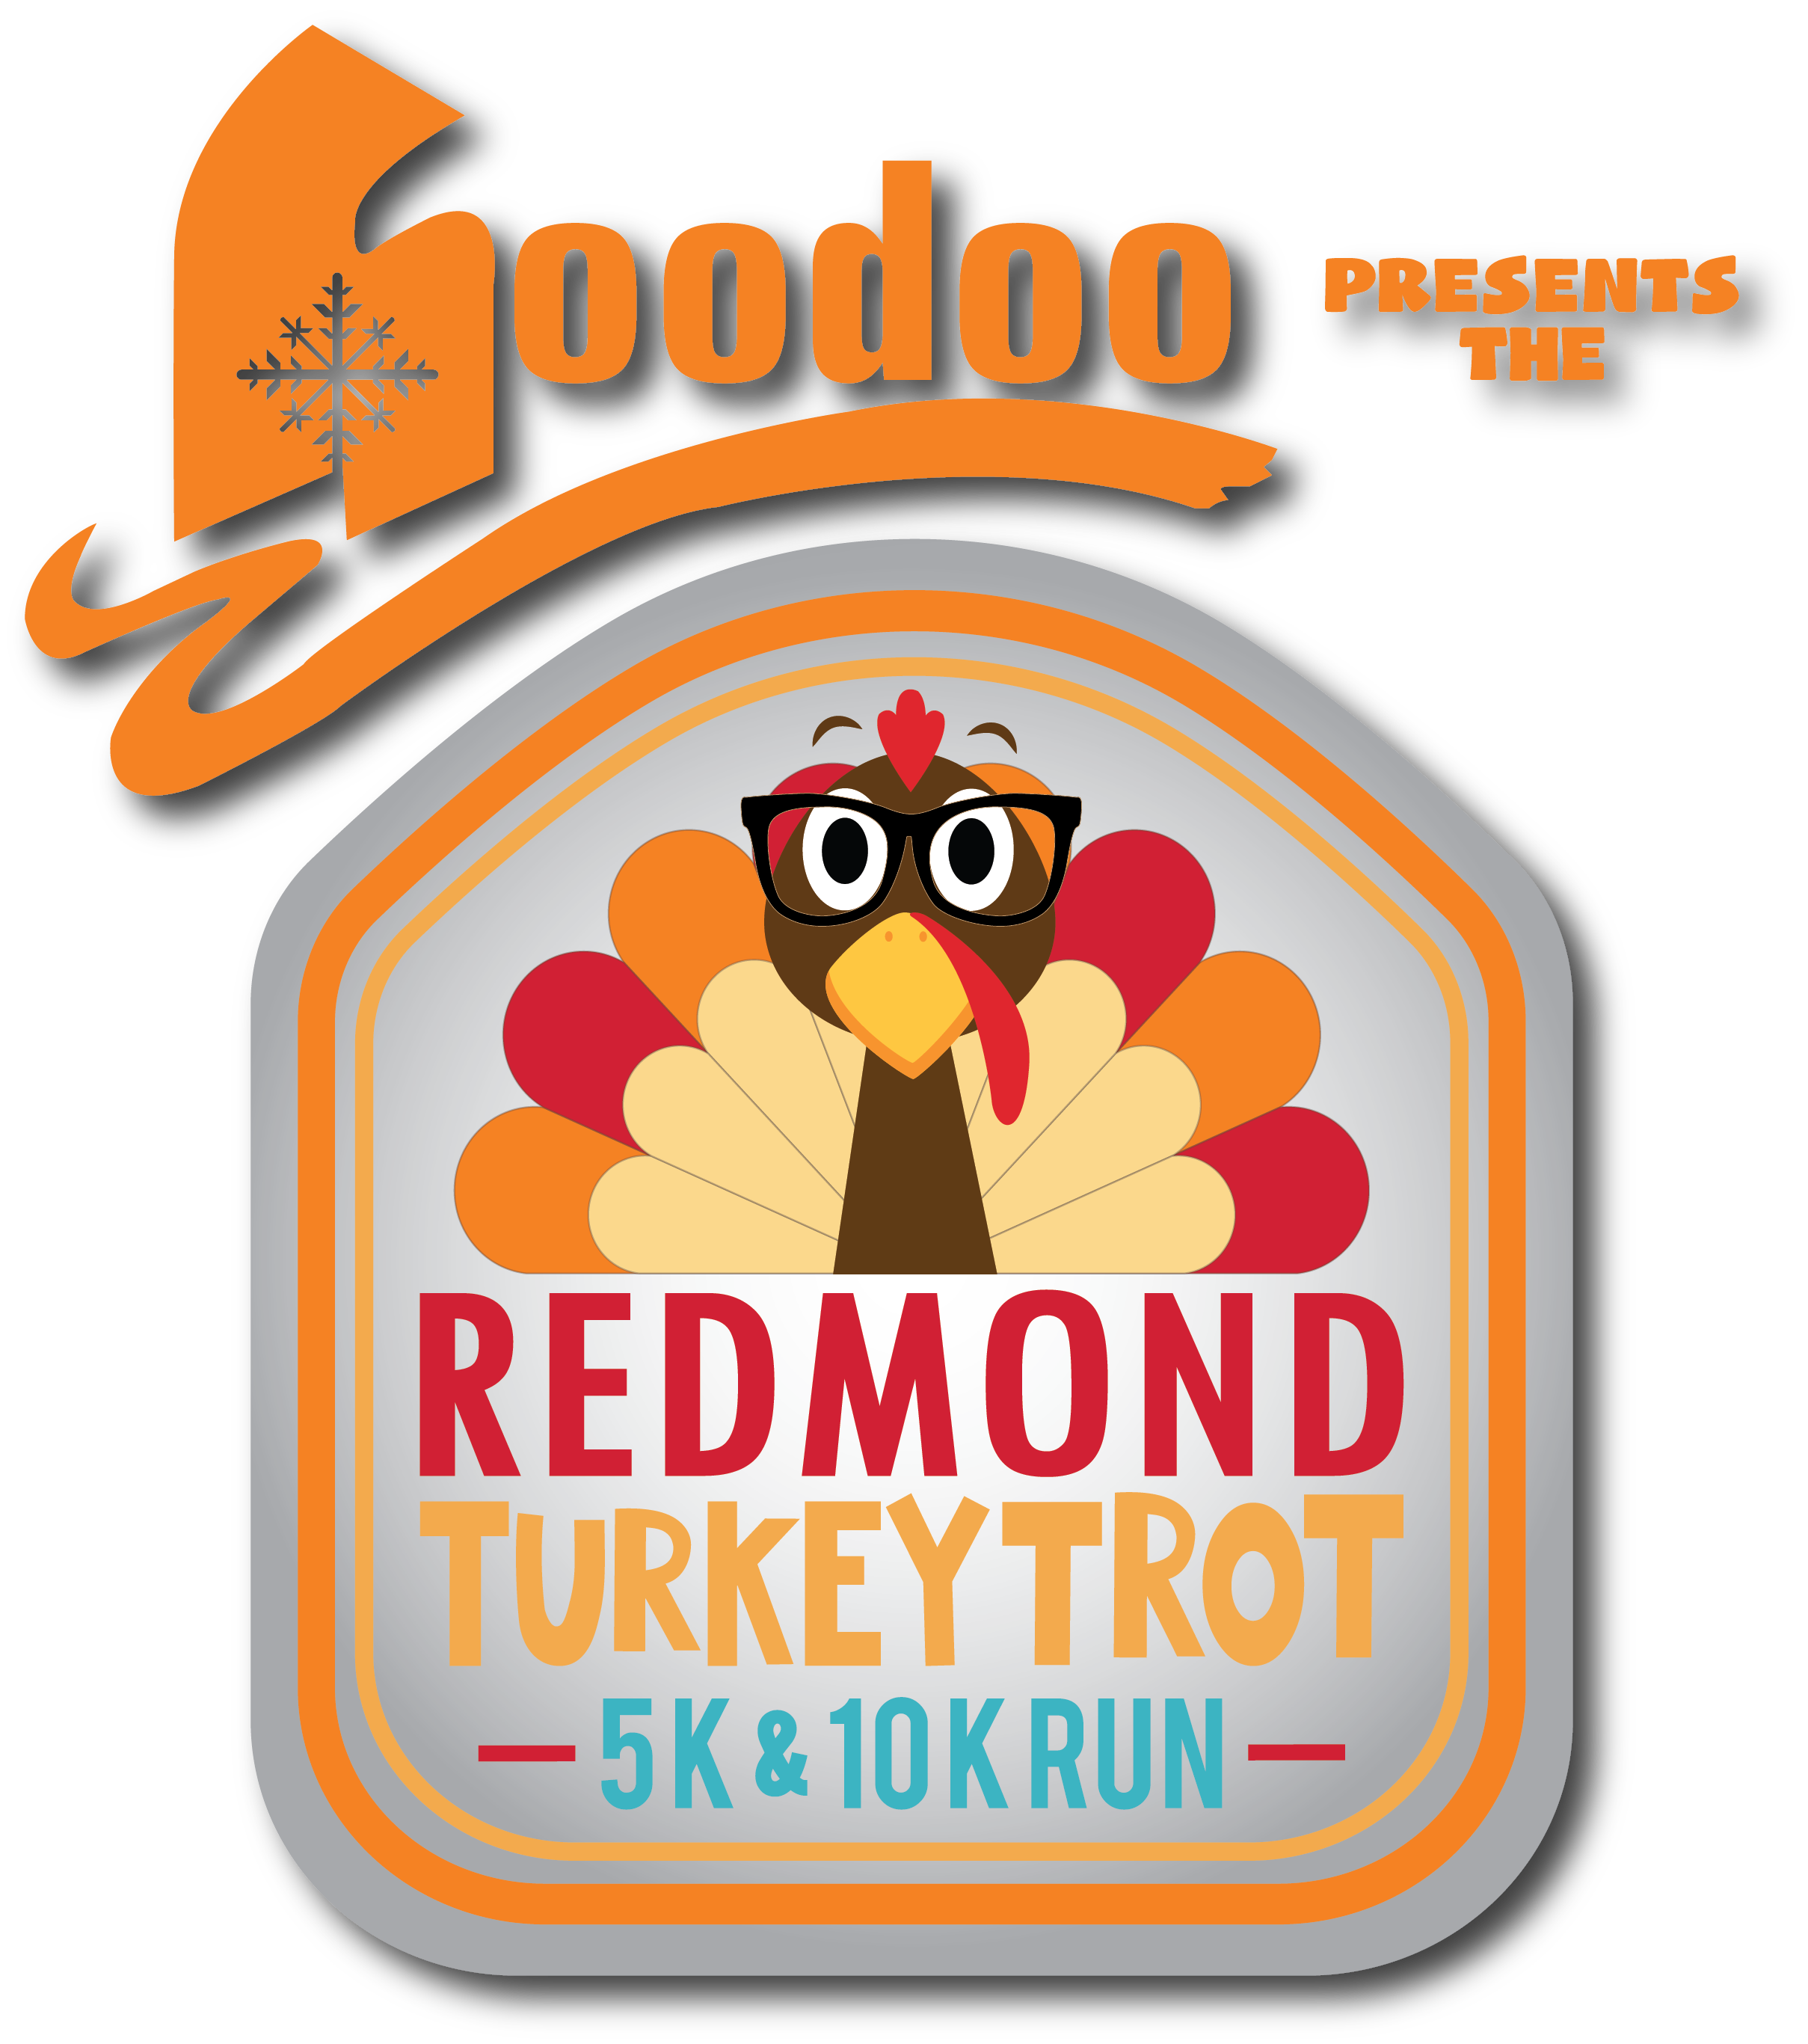 Redmond Turkey Trot 5K & 10K presented by Hoodoo @ Radlands Trail, Redmond Oregon